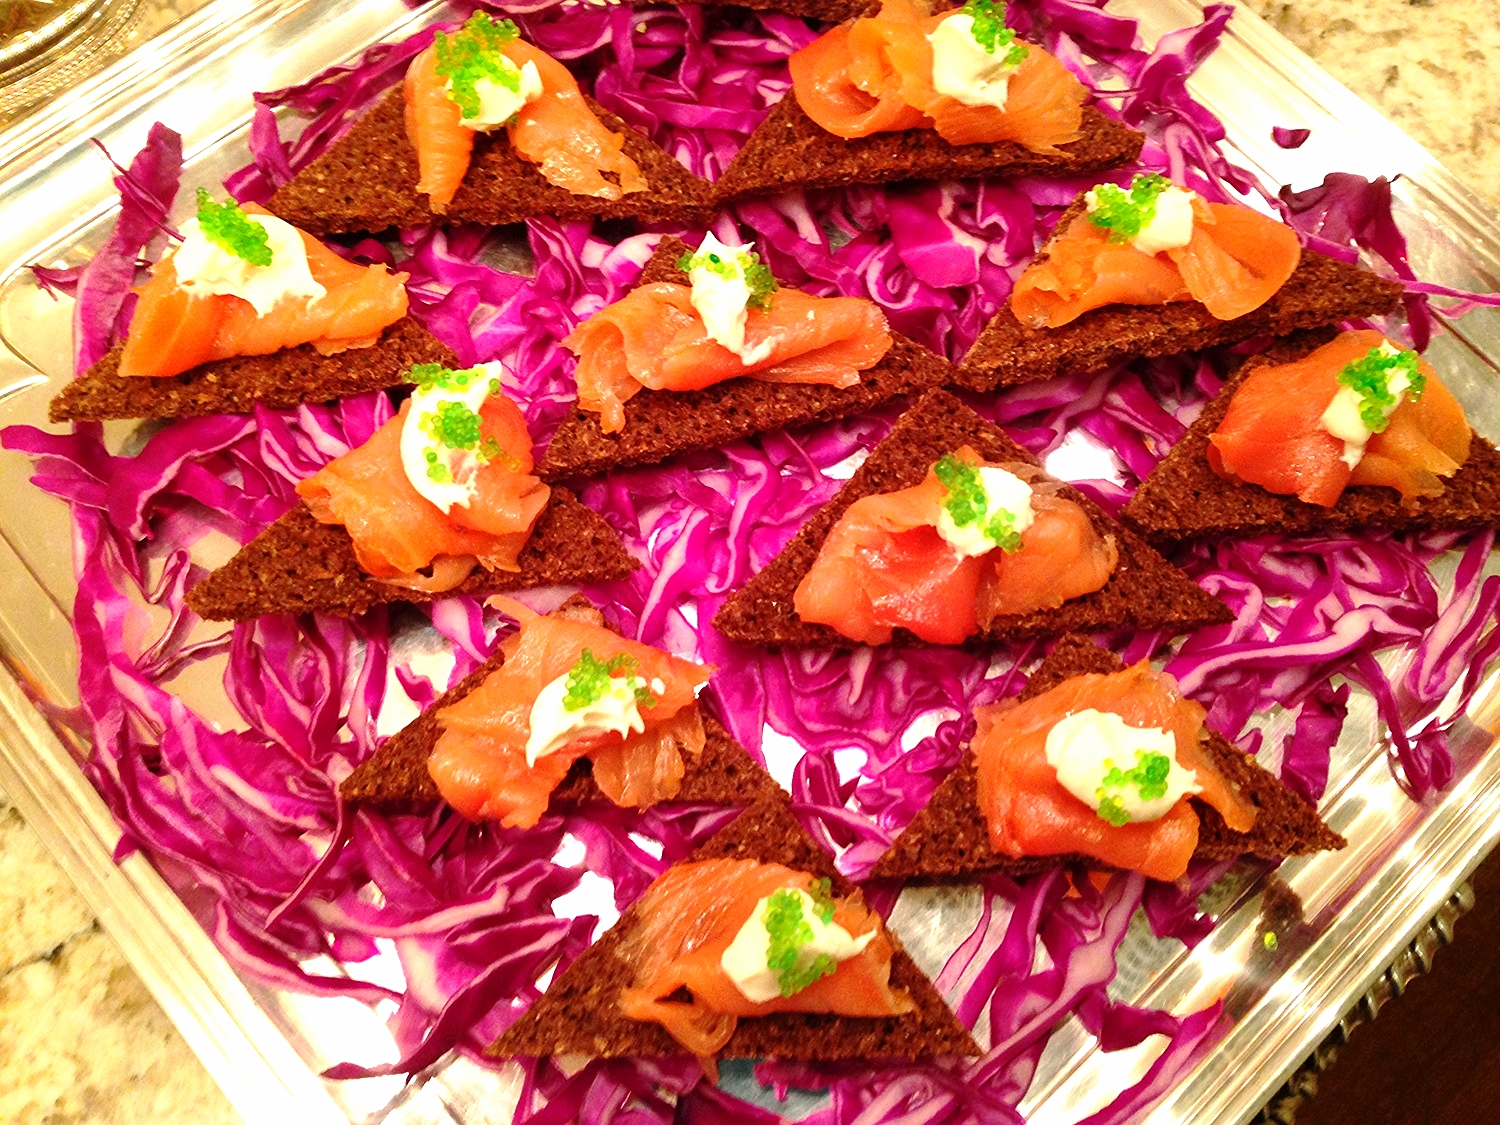 Home-cured gravlax with horseradish cream and wasabi caviar on pumpernickel toast point